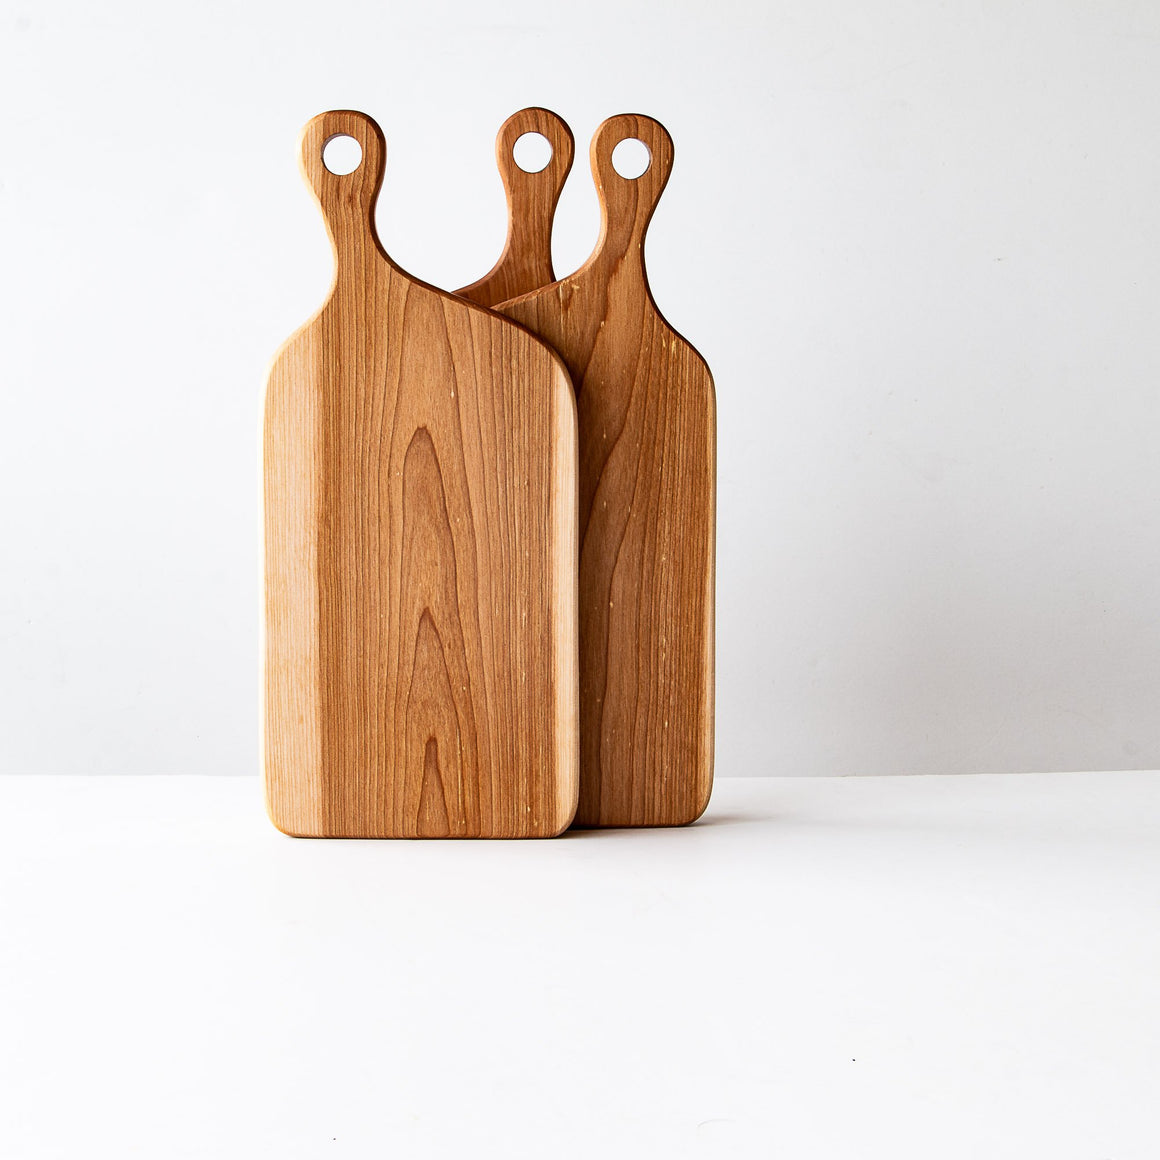 Muskoka N°3 - Handmade Service Board in Birch - Sold by Chic & Basta